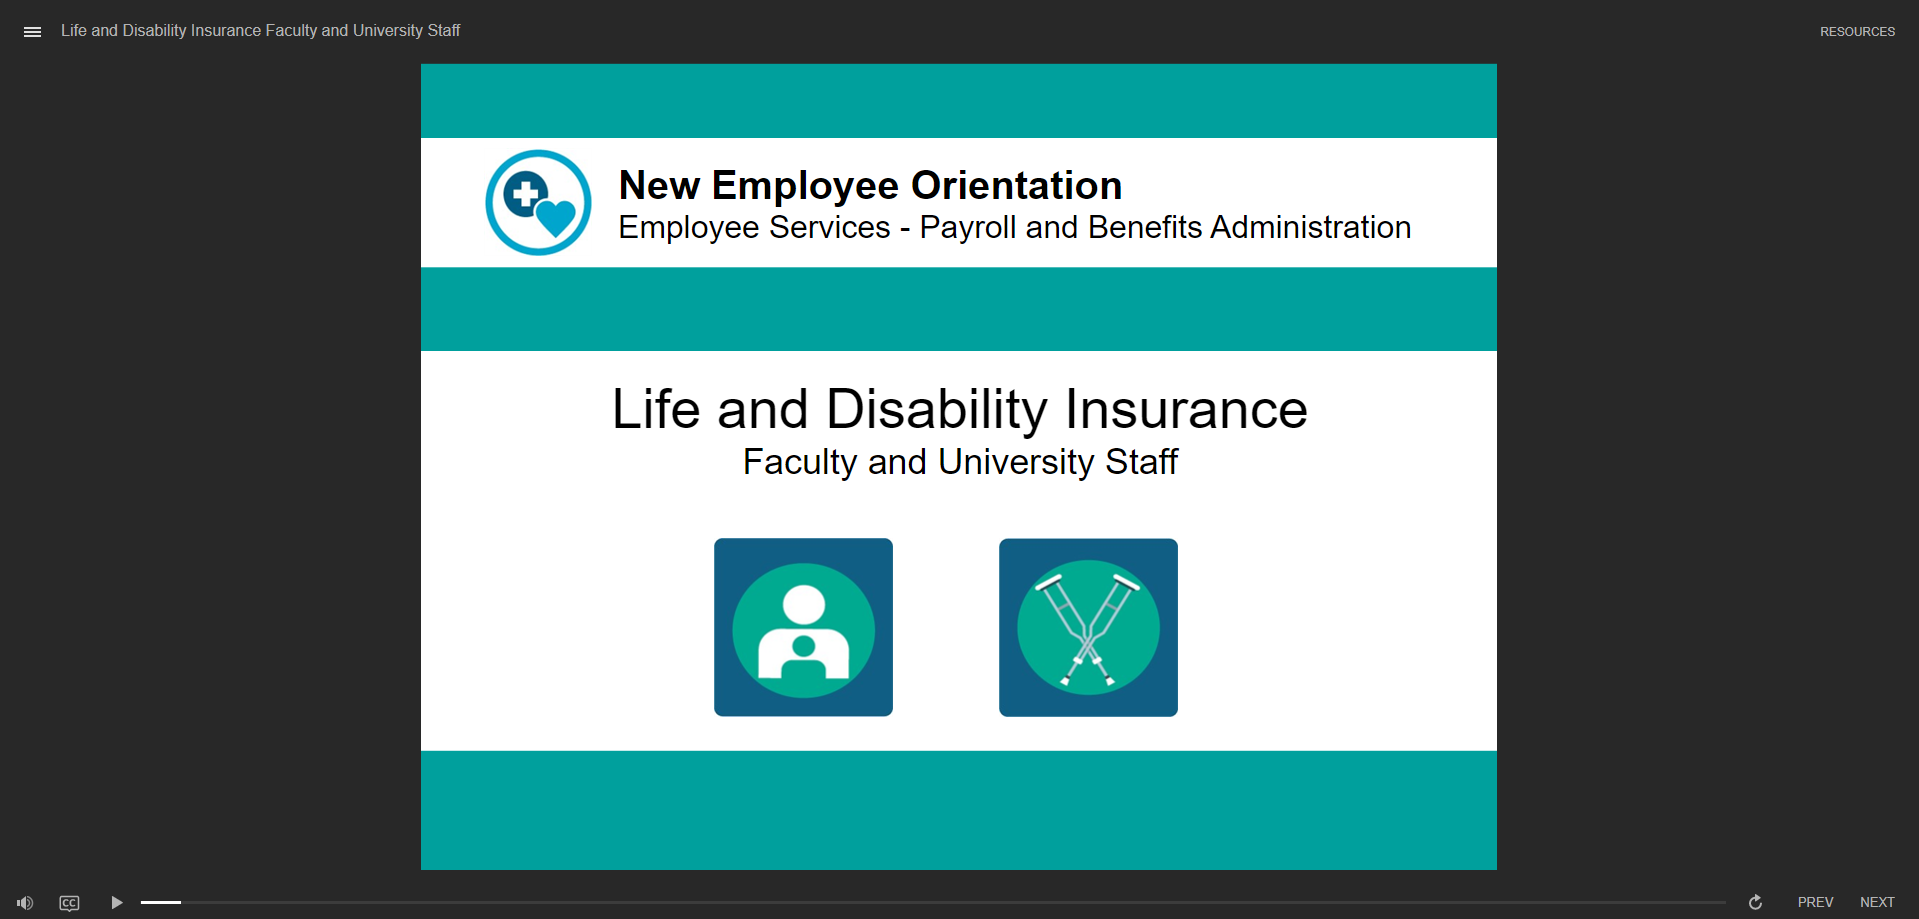 Life and disability insurance for Faculty and University Staff - click to watch course